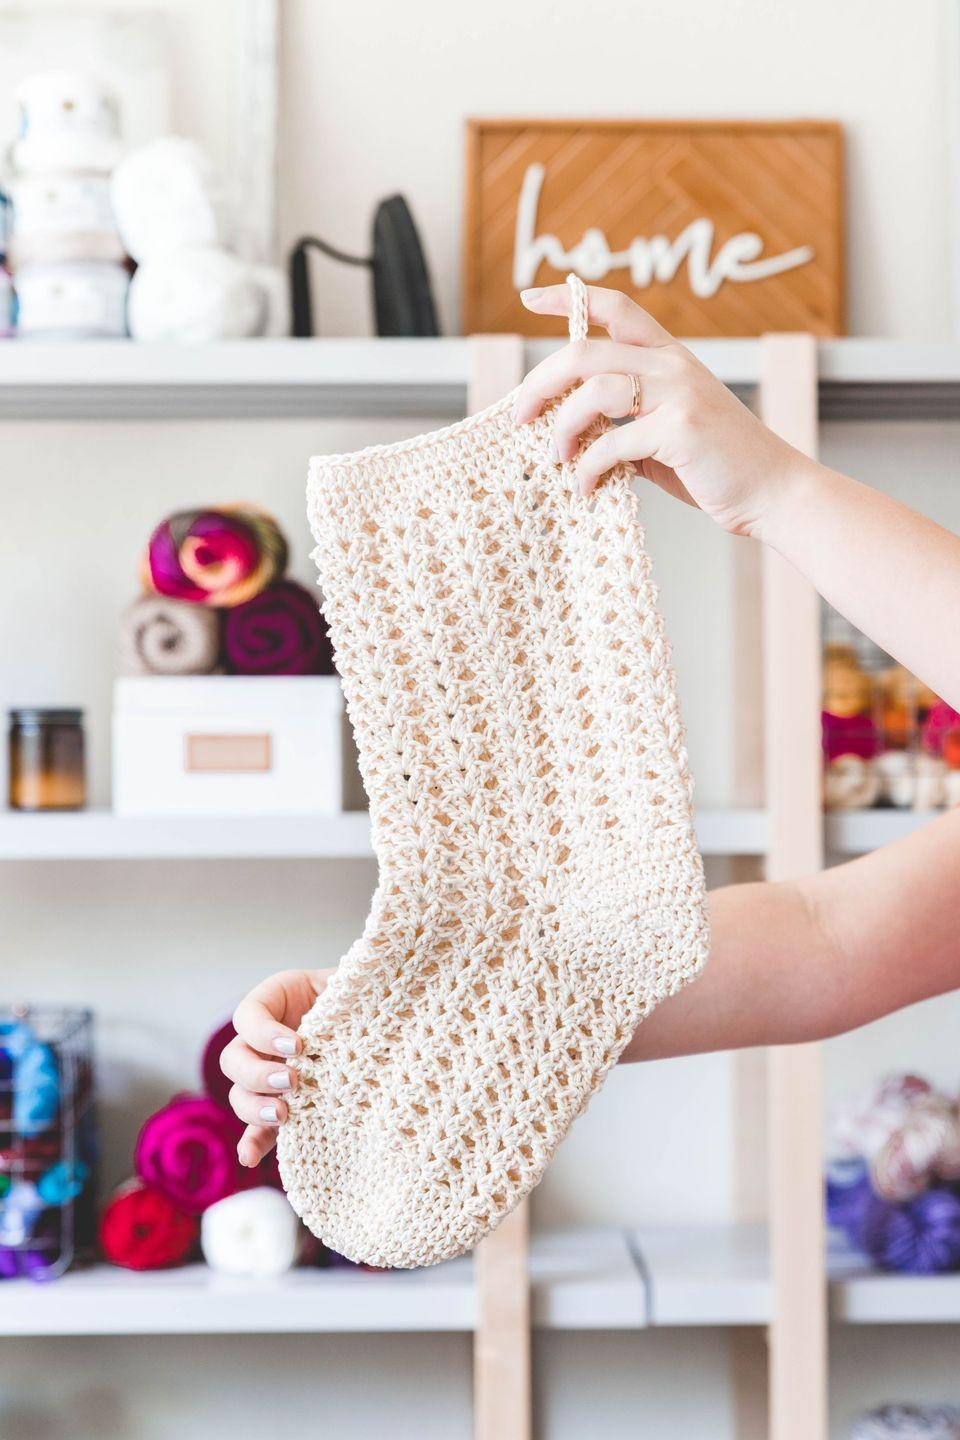 """<p>White, hand-knit blankets are certainly a fixture of farmhouse décor. But what if you applied that same aesthetic to your Christmas stocking? Follow this free pattern to make a <a href=""""https://www.countryliving.com/home-design/decorating-ideas/how-to/g860/farmhouse-style-0809/"""" rel=""""nofollow noopener"""" target=""""_blank"""" data-ylk=""""slk:farmhouse"""" class=""""link rapid-noclick-resp"""">farmhouse</a> stocking of your very own. <br> <strong><br>Get the tutorial at <a href=""""https://www.sewrella.com/crochet-farmhouse-christmas-stocking/"""" rel=""""nofollow noopener"""" target=""""_blank"""" data-ylk=""""slk:Sewrella"""" class=""""link rapid-noclick-resp"""">Sewrella</a>.</strong><br> <br><a class=""""link rapid-noclick-resp"""" href=""""https://www.amazon.com/Lion-Brand-Yarn-400-5-1117-Crochet/dp/B000ADYTAE/ref=sr_1_1?tag=syn-yahoo-20&ascsubtag=%5Bartid%7C10050.g.28872655%5Bsrc%7Cyahoo-us"""" rel=""""nofollow noopener"""" target=""""_blank"""" data-ylk=""""slk:SHOP CROCHET HOOKS"""">SHOP CROCHET HOOKS</a><br></p>"""